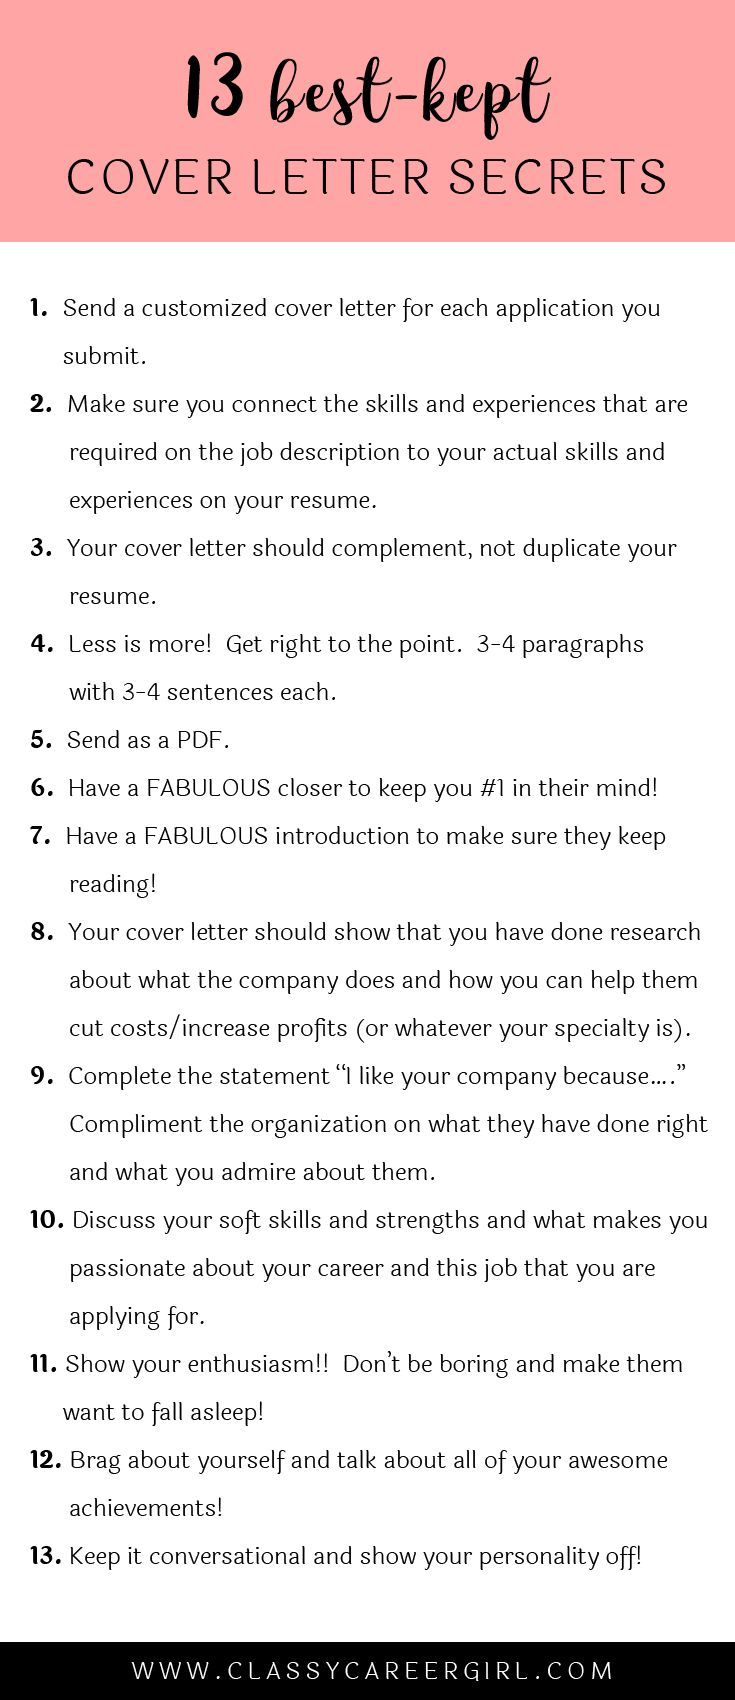 Cover Letter Advice Magnificent The 13 Bestkept Cover Letter Secrets  Small Things Career Inspiration Design